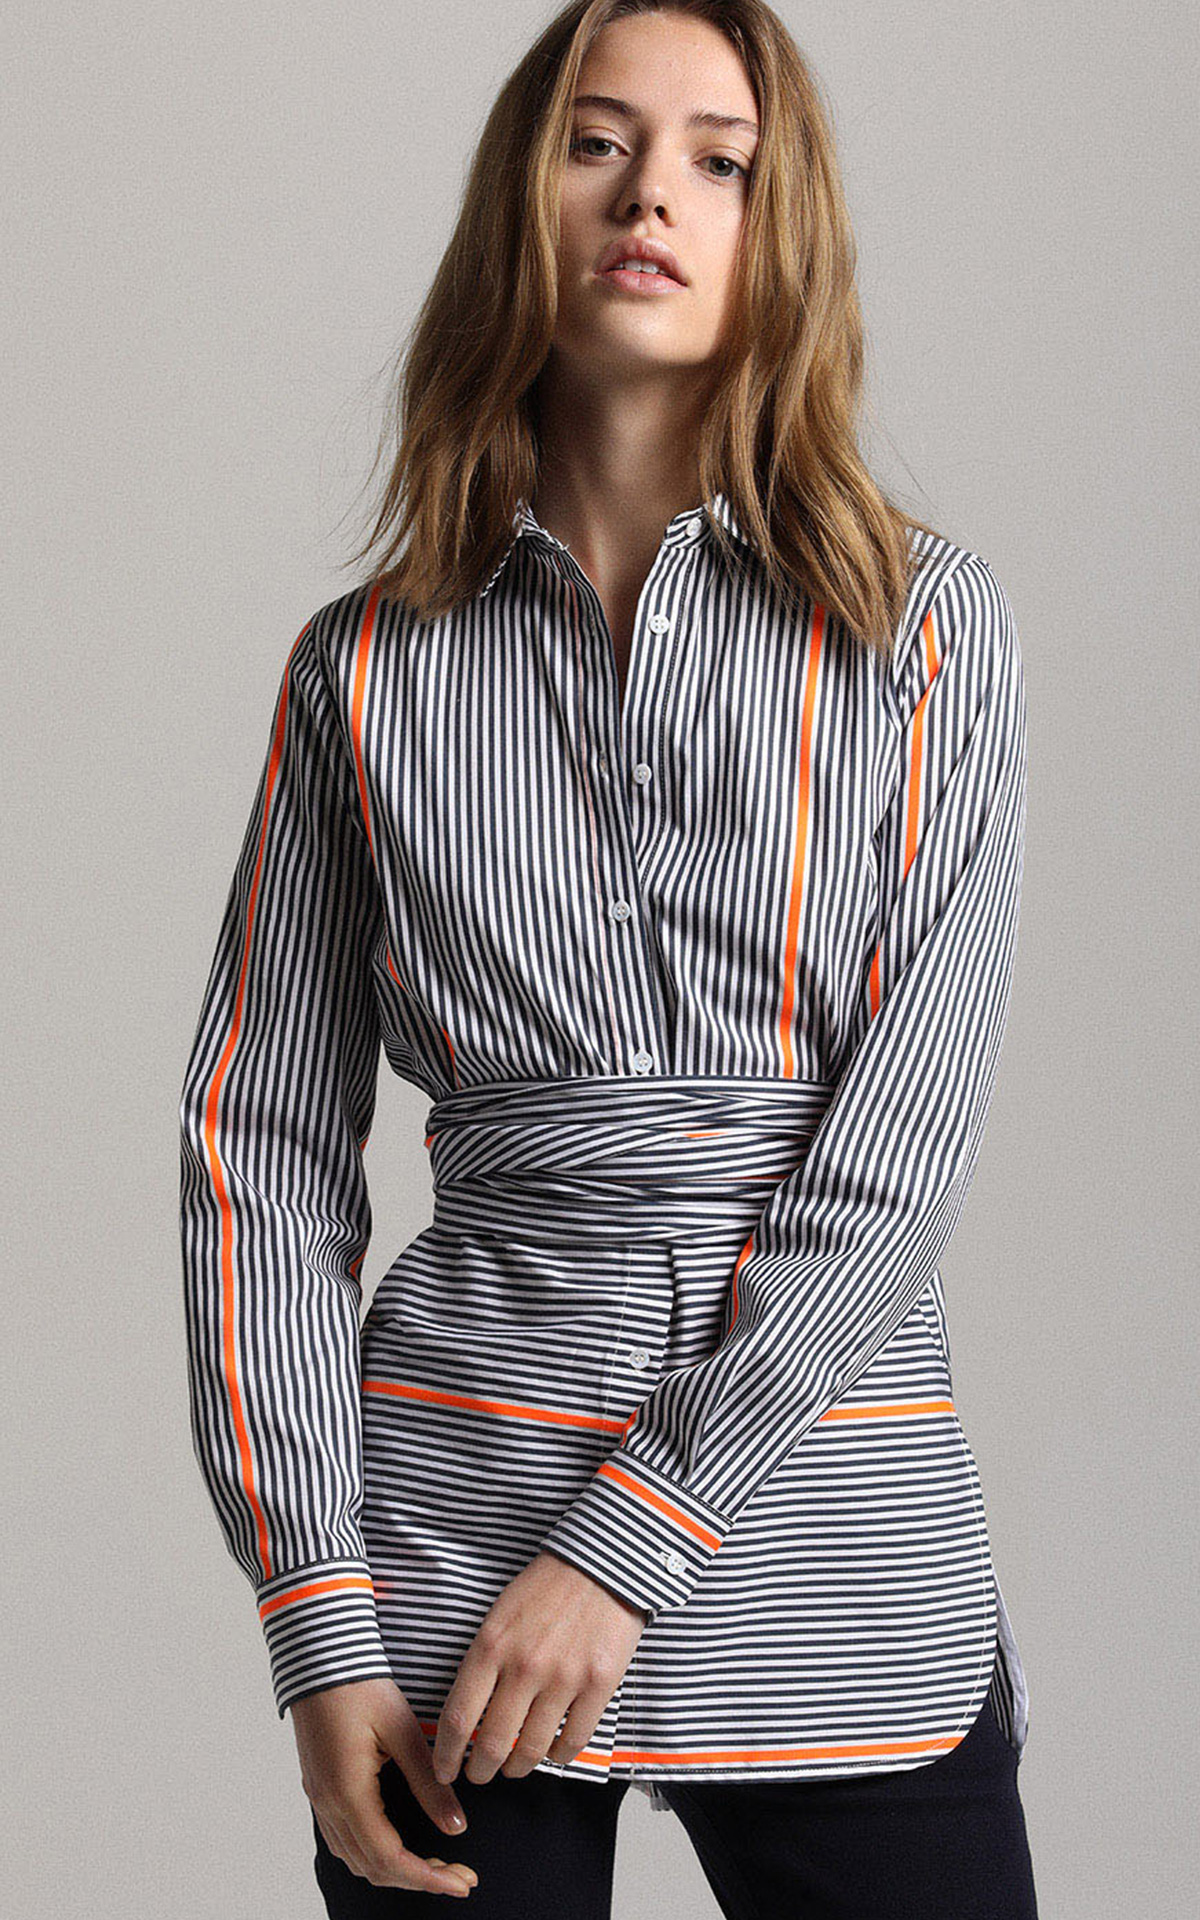 La Vallée Village Apostrophe striped shirt with belt